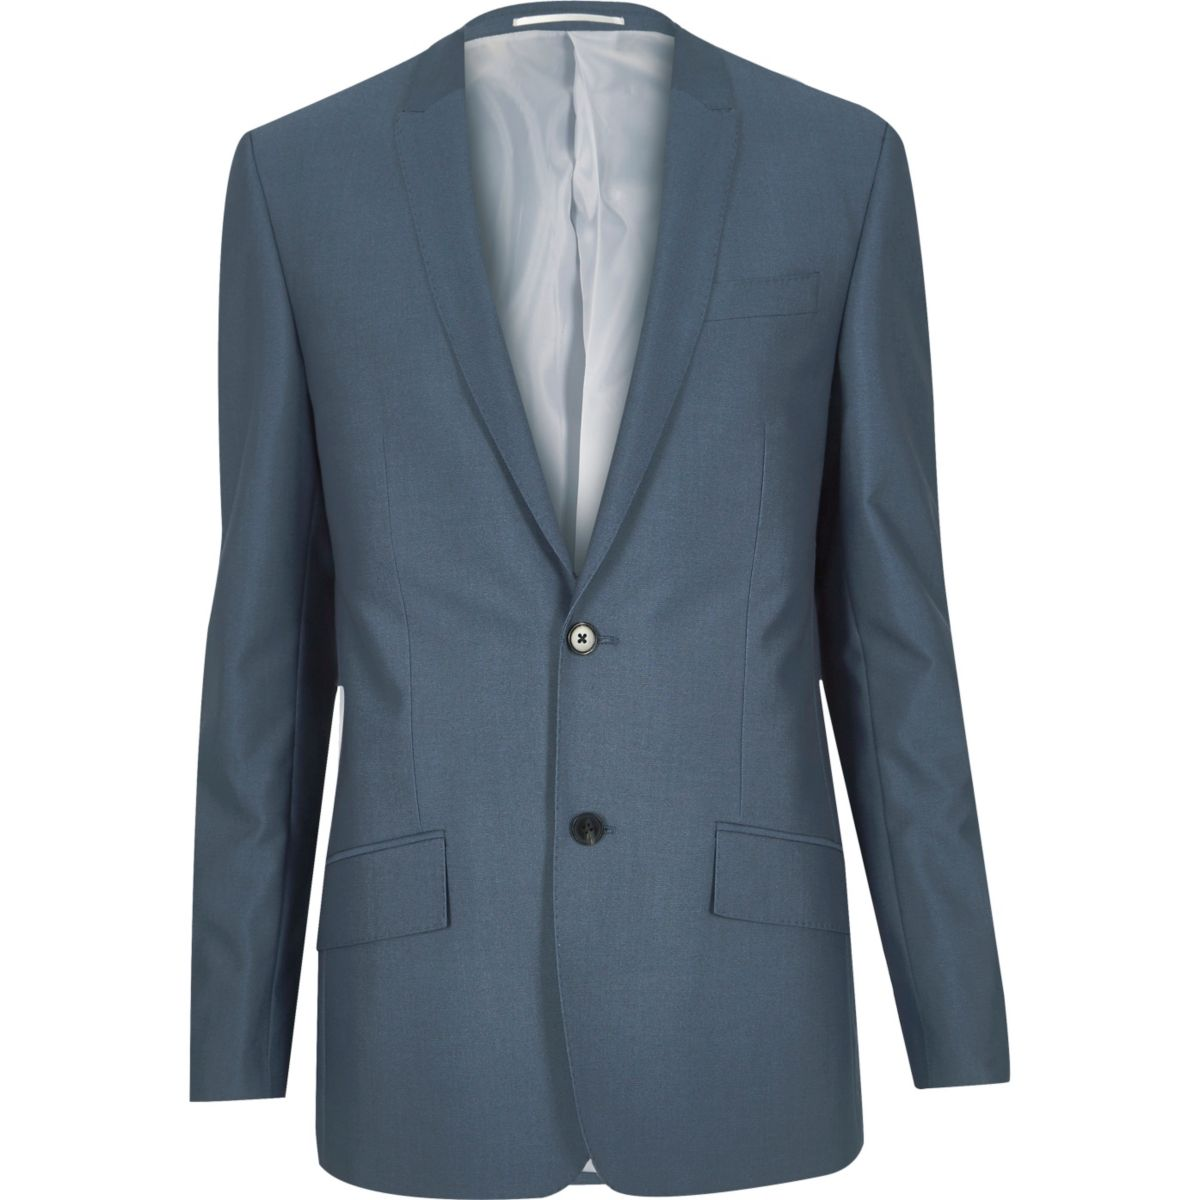 Blue tailored suit jacket